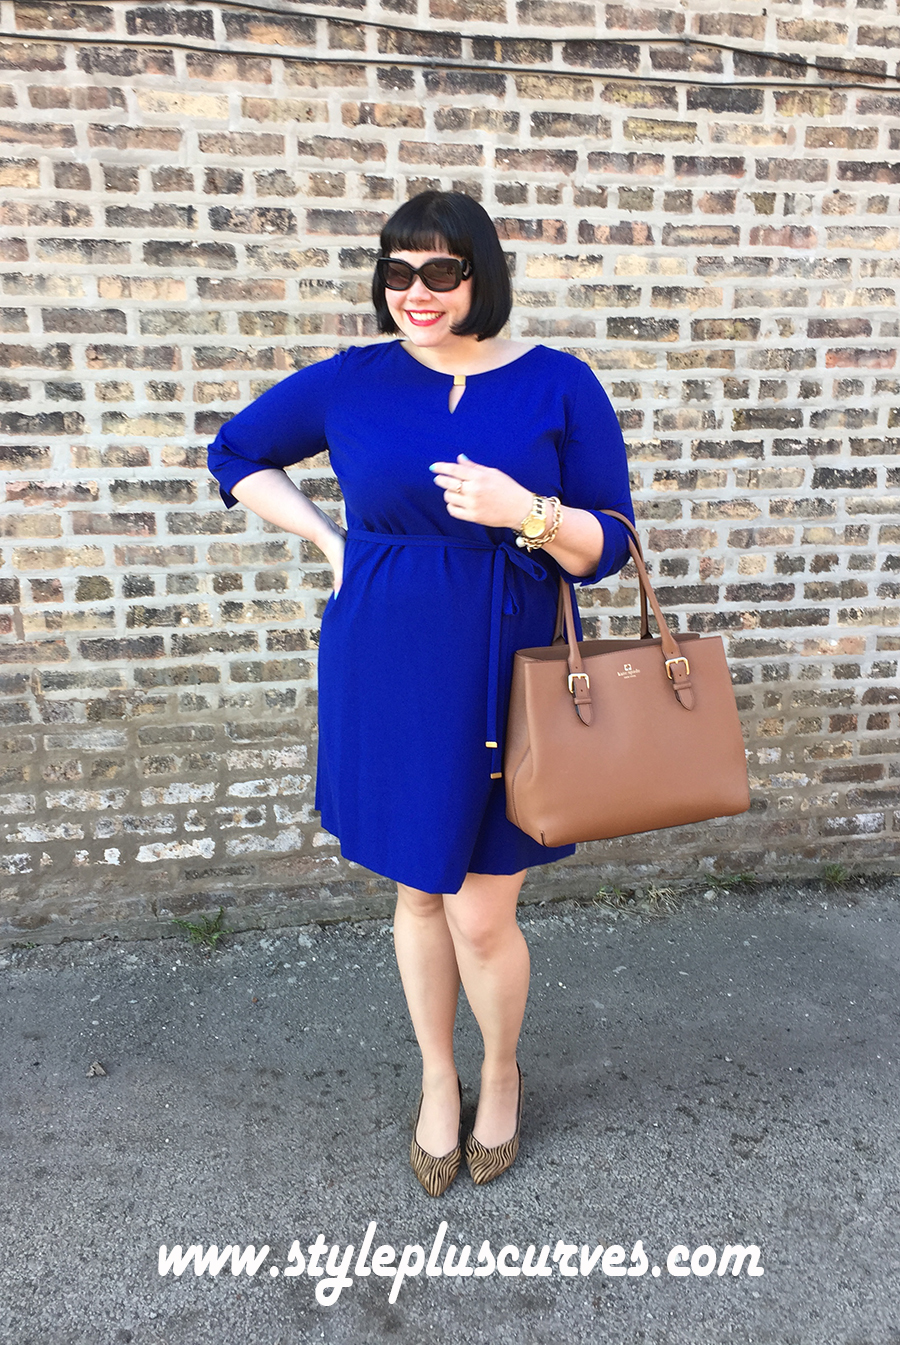 Plus Size Blue Dress by Tahari on Amber from Style Plus Curves with Kate Spade purse